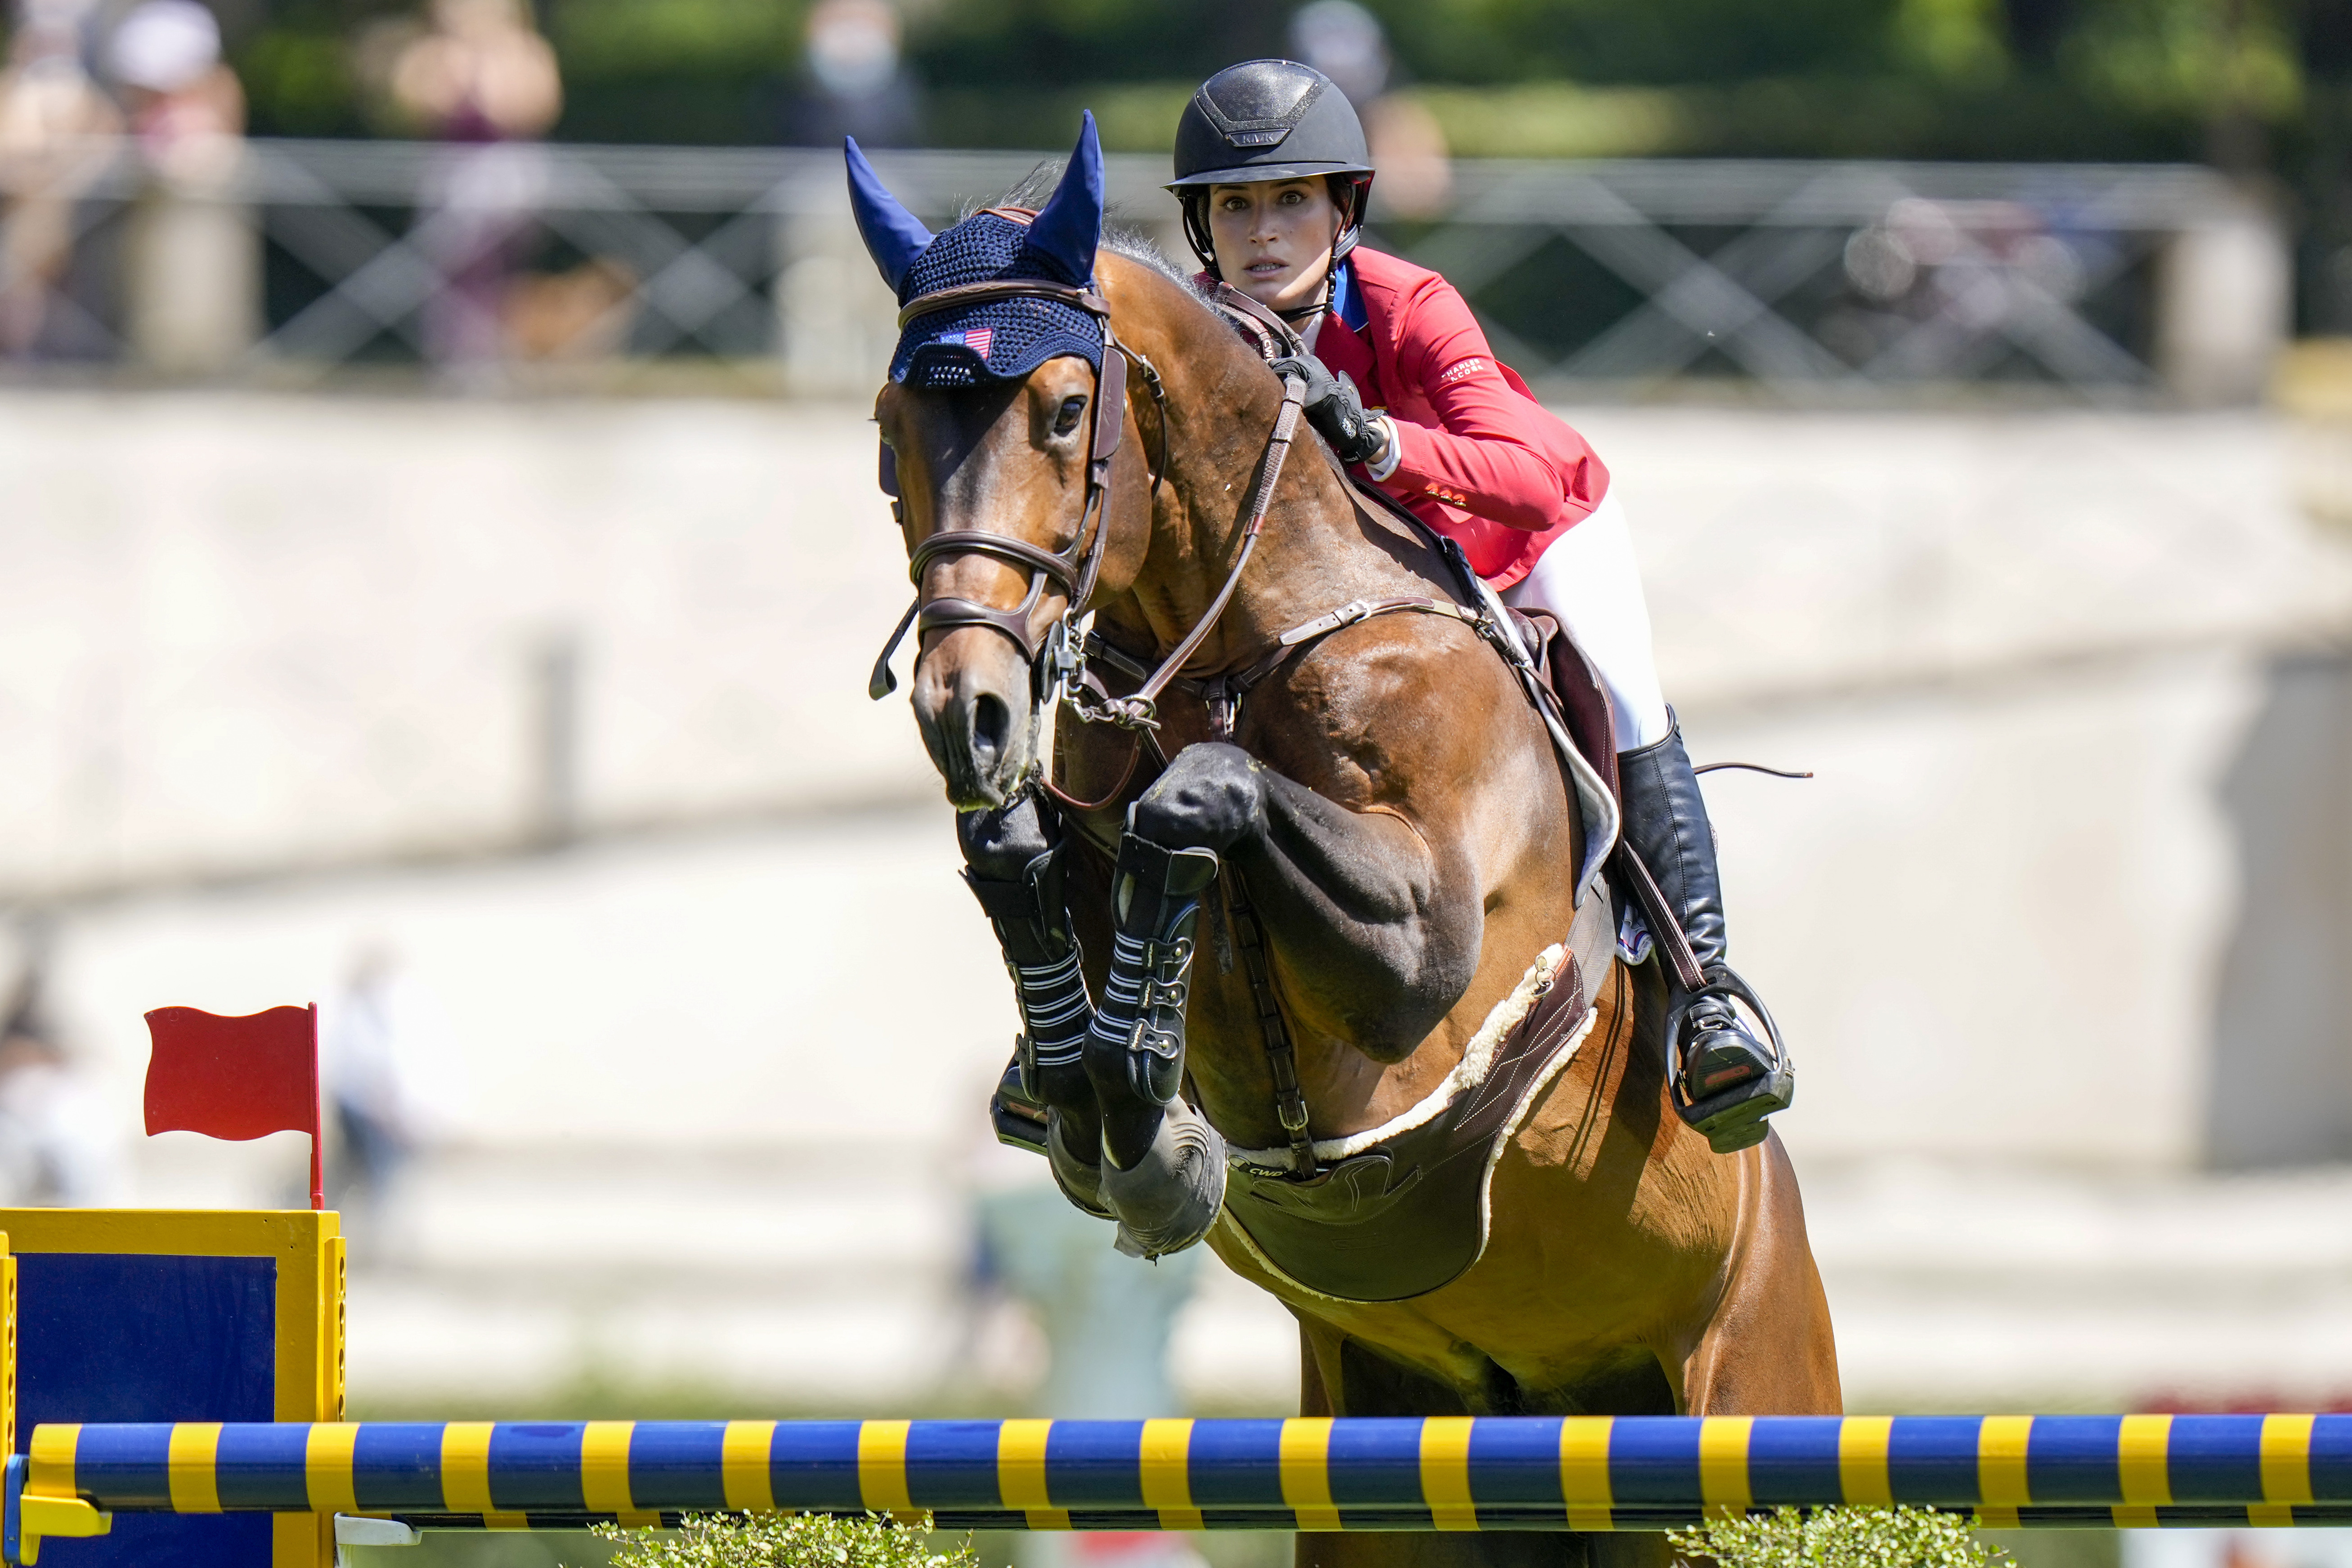 Jessica Springsteen, Bruce's Daughter, Makes U.S. Equestrian Team for 2021 Olympics